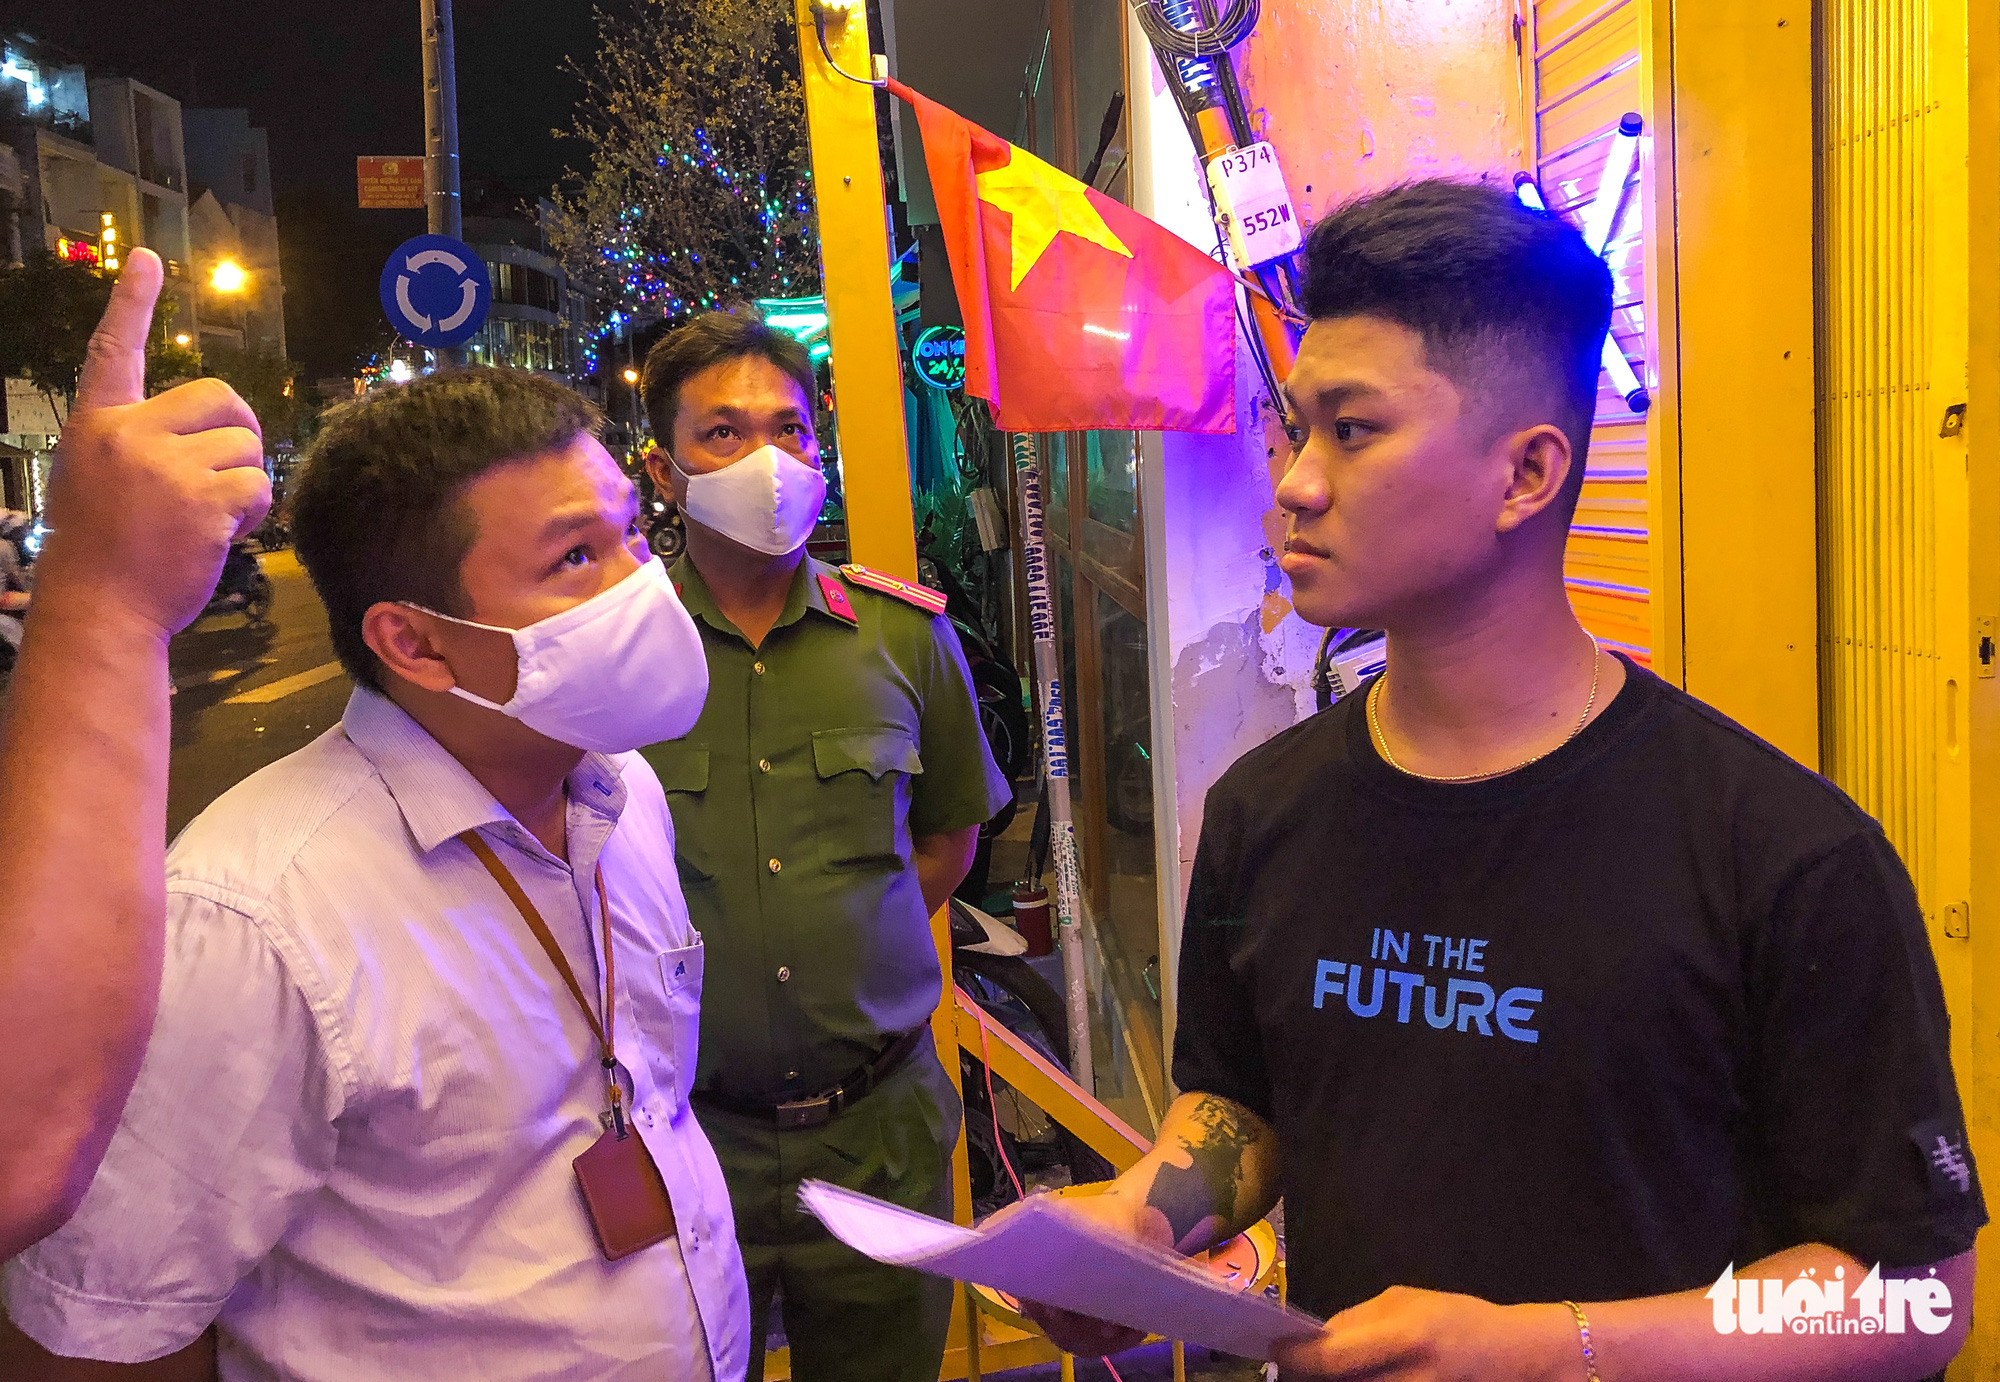 Stores on Bui Vien Street in Saigon committed to reducing noise